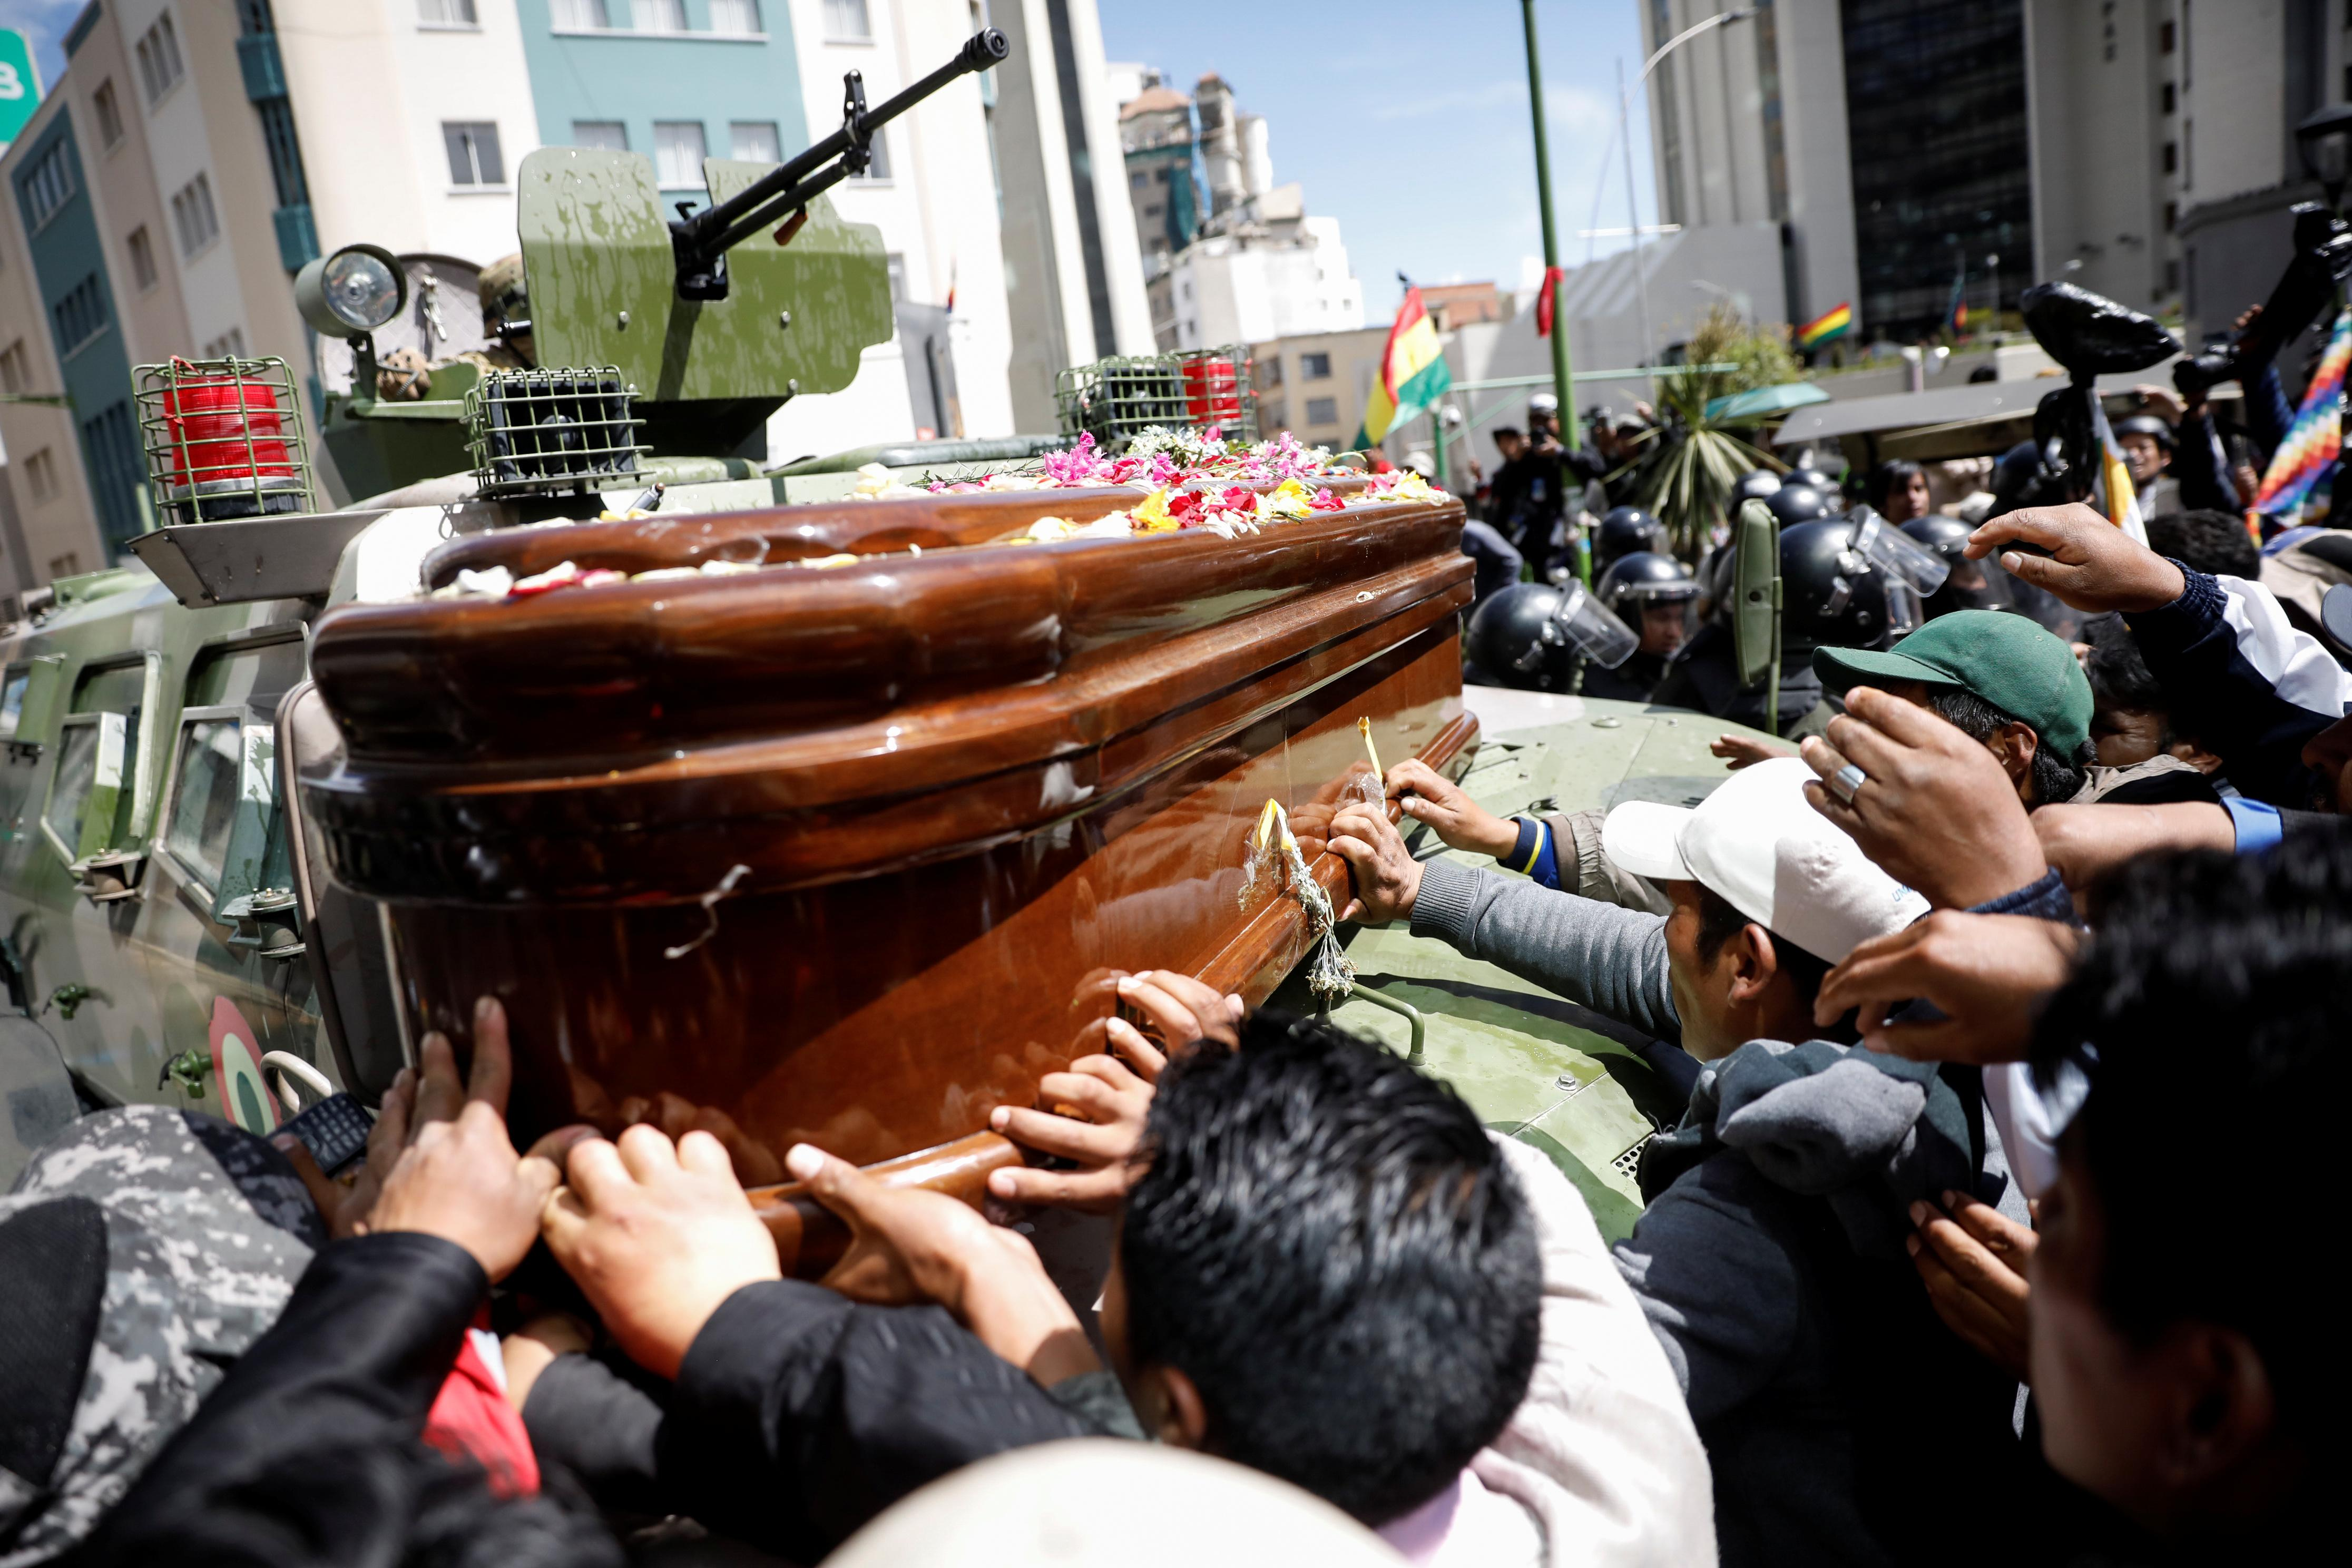 Supporters of Bolivia's Morales march with coffins of dead protesters